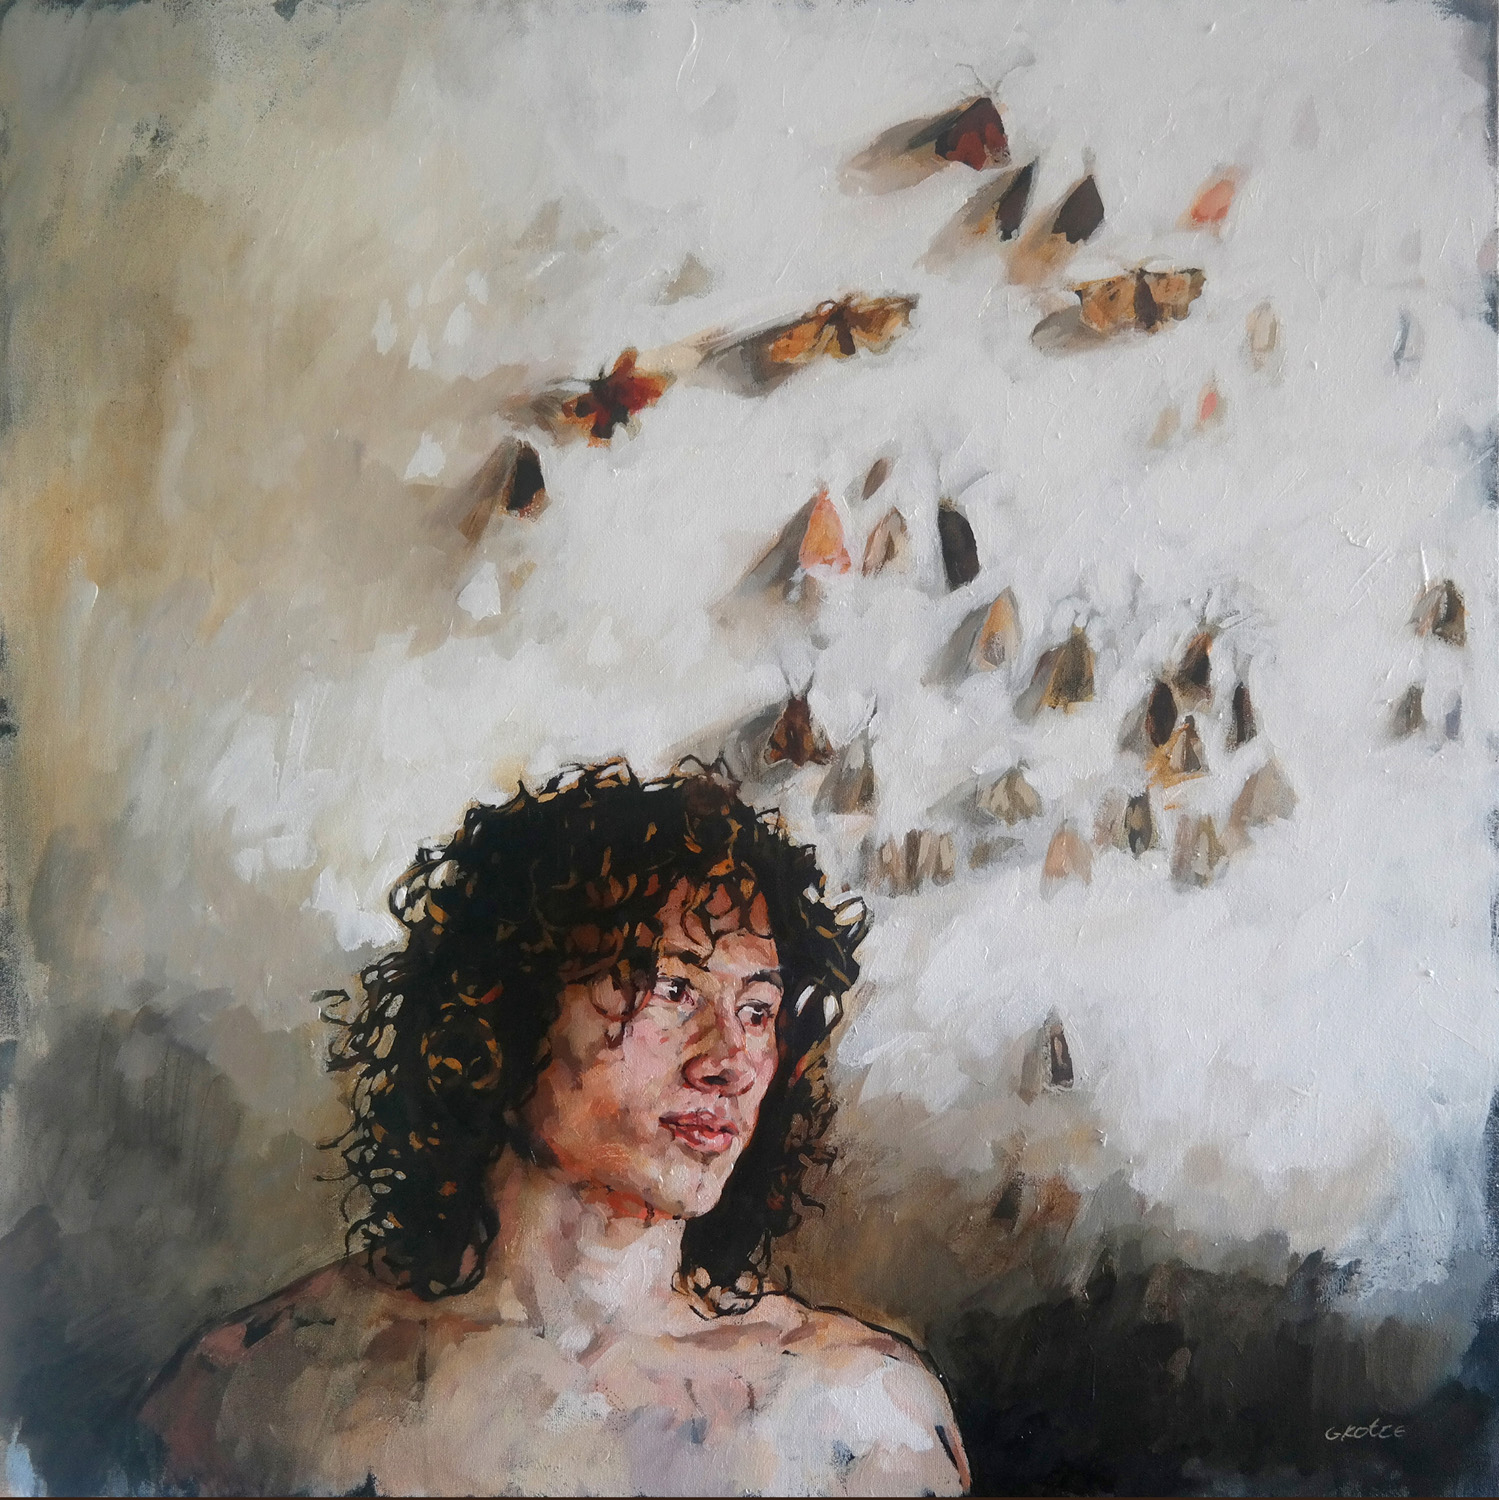 The_young_man_kept_company_this_moths_oil_on_canvas_80_x_80cm_copy